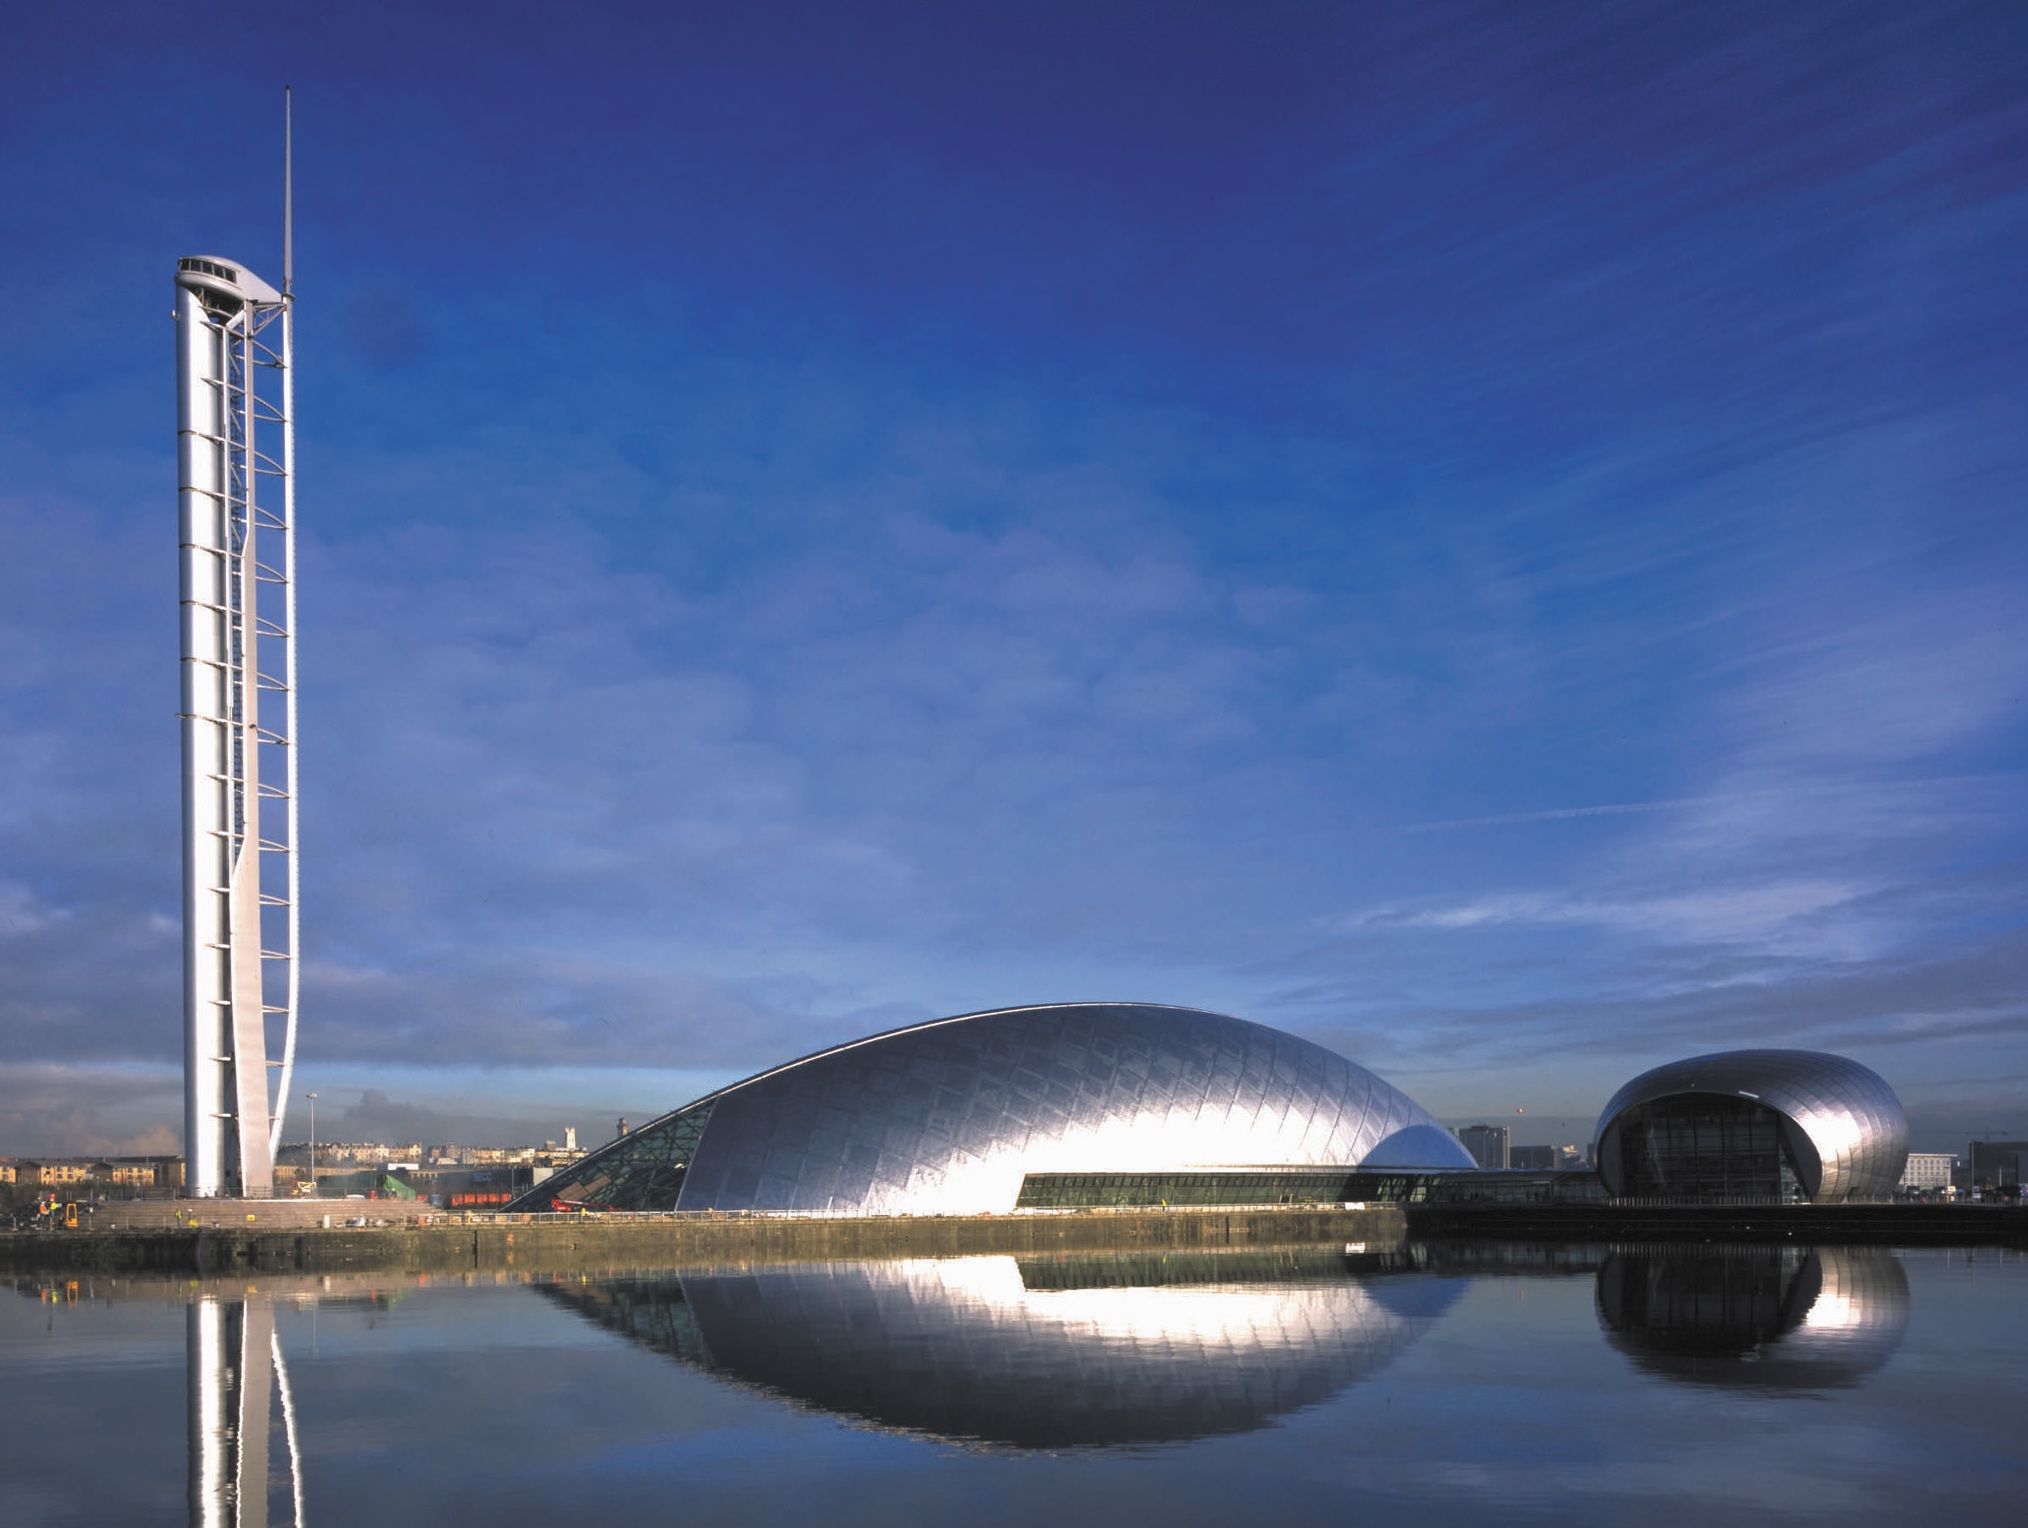 Monday, 12 OctoberCivic Reception at the Glasgow Science Centre - Join your fellow delegates for a night of exploration and excitement at the Glasgow Science Centre. This event is free for all registered delegates and is hosted by the City of Glasgow.